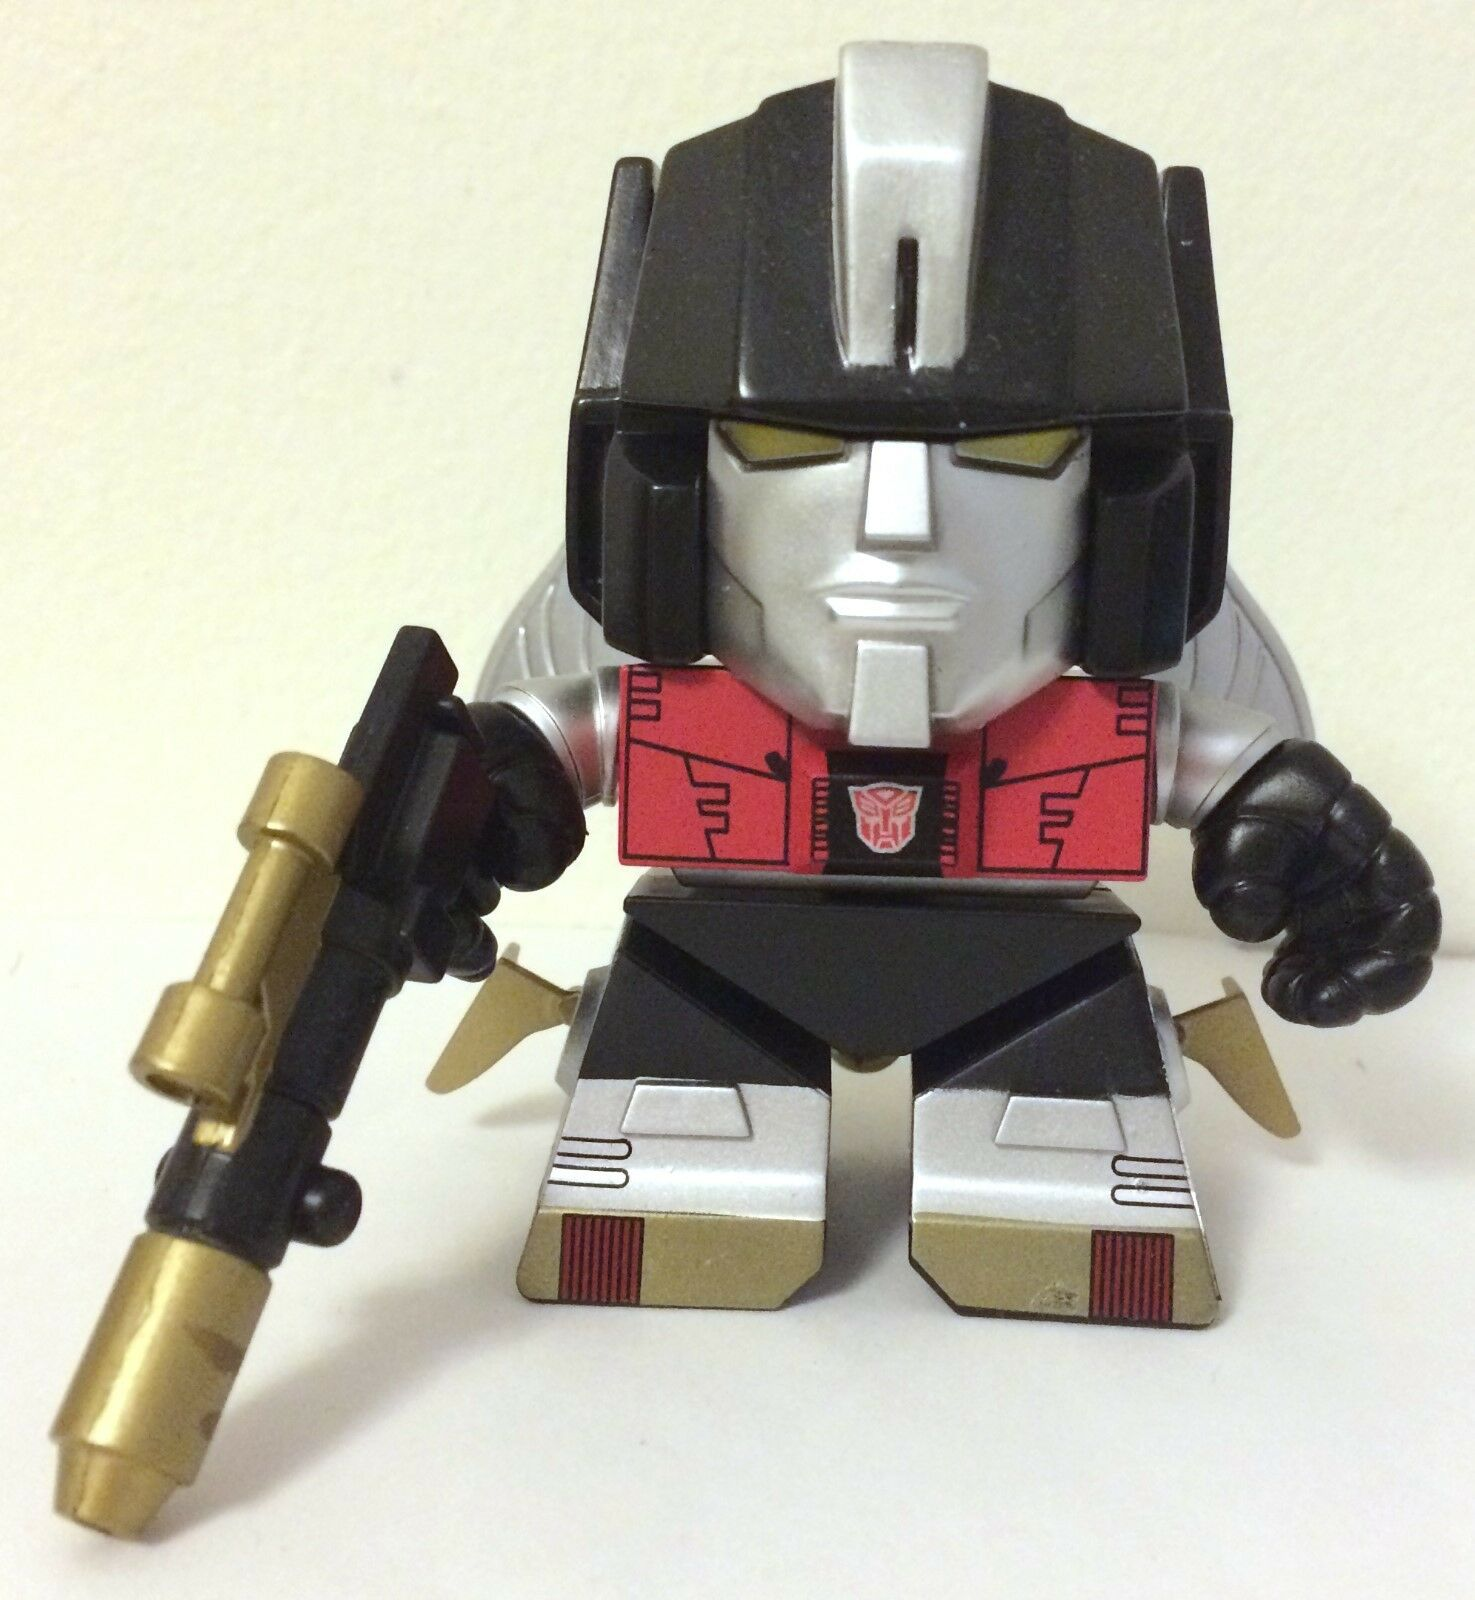 Transformers  Loyal Subjects  Dinobot Dinobot Dinobot Sludge 3ed584